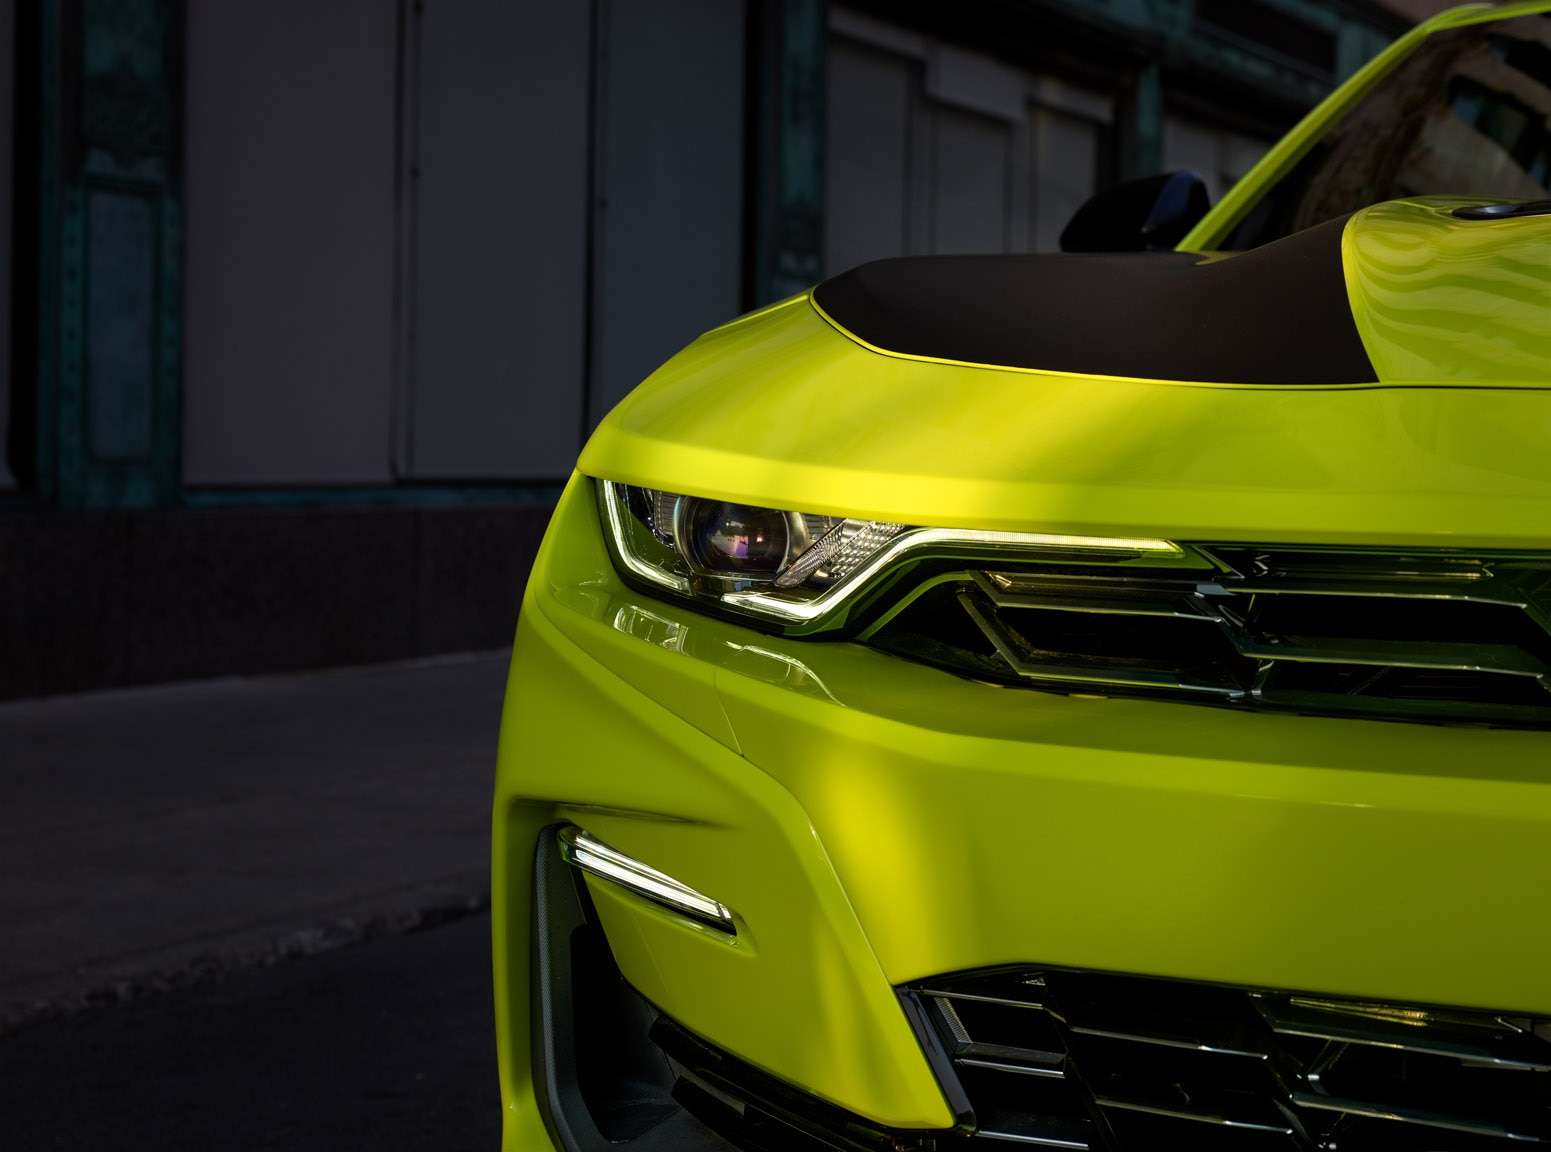 2019 Chevrolet Camaro Ss In Shock Yellow Preps For Sema